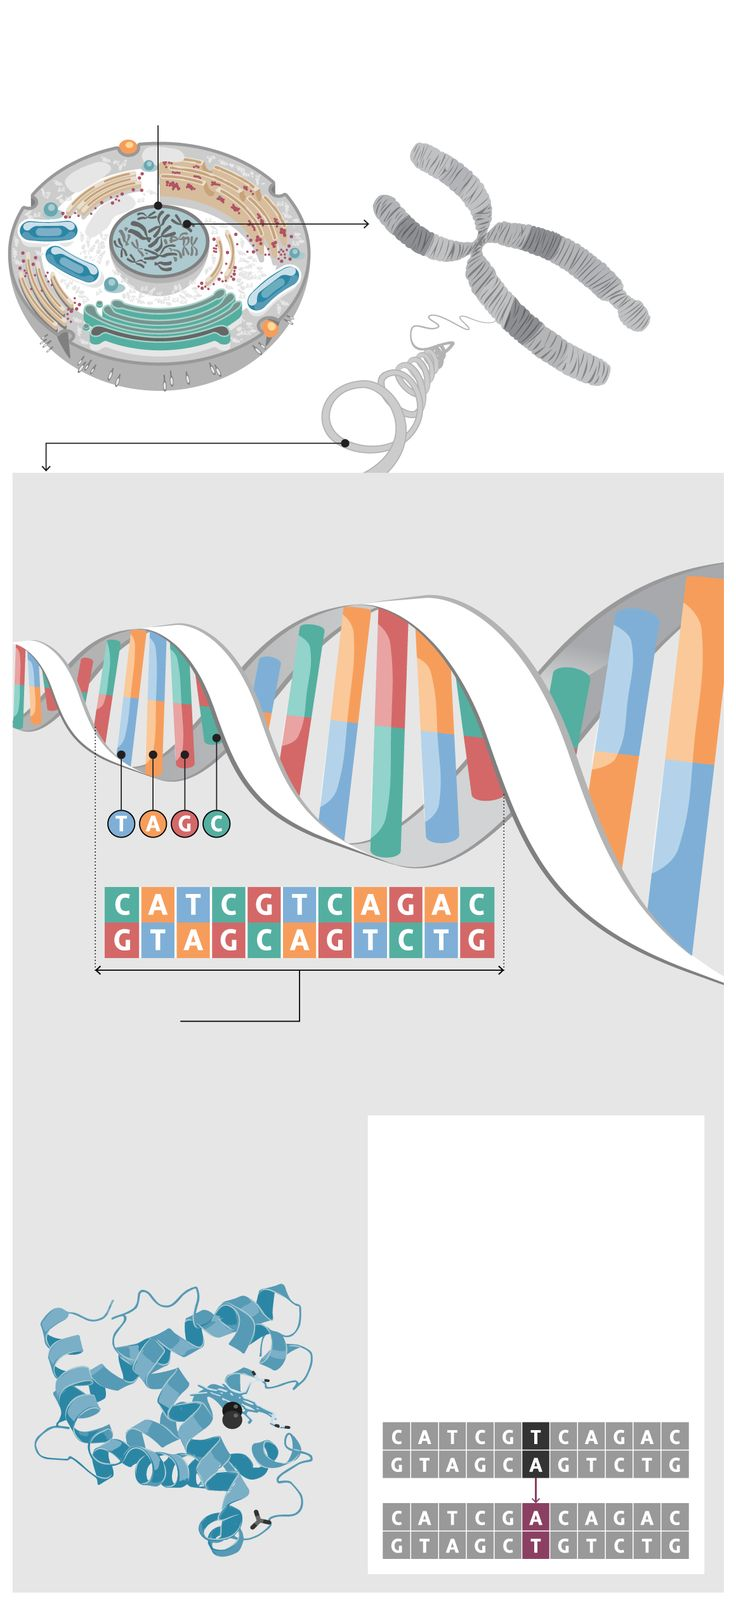 The Personal Genome Project was supposed to revolutionize medicine, but the results reveal how much we still have to learn. Carolyn Abraham looks at the risk of misleading results as DNA testing enters mainstream medicine